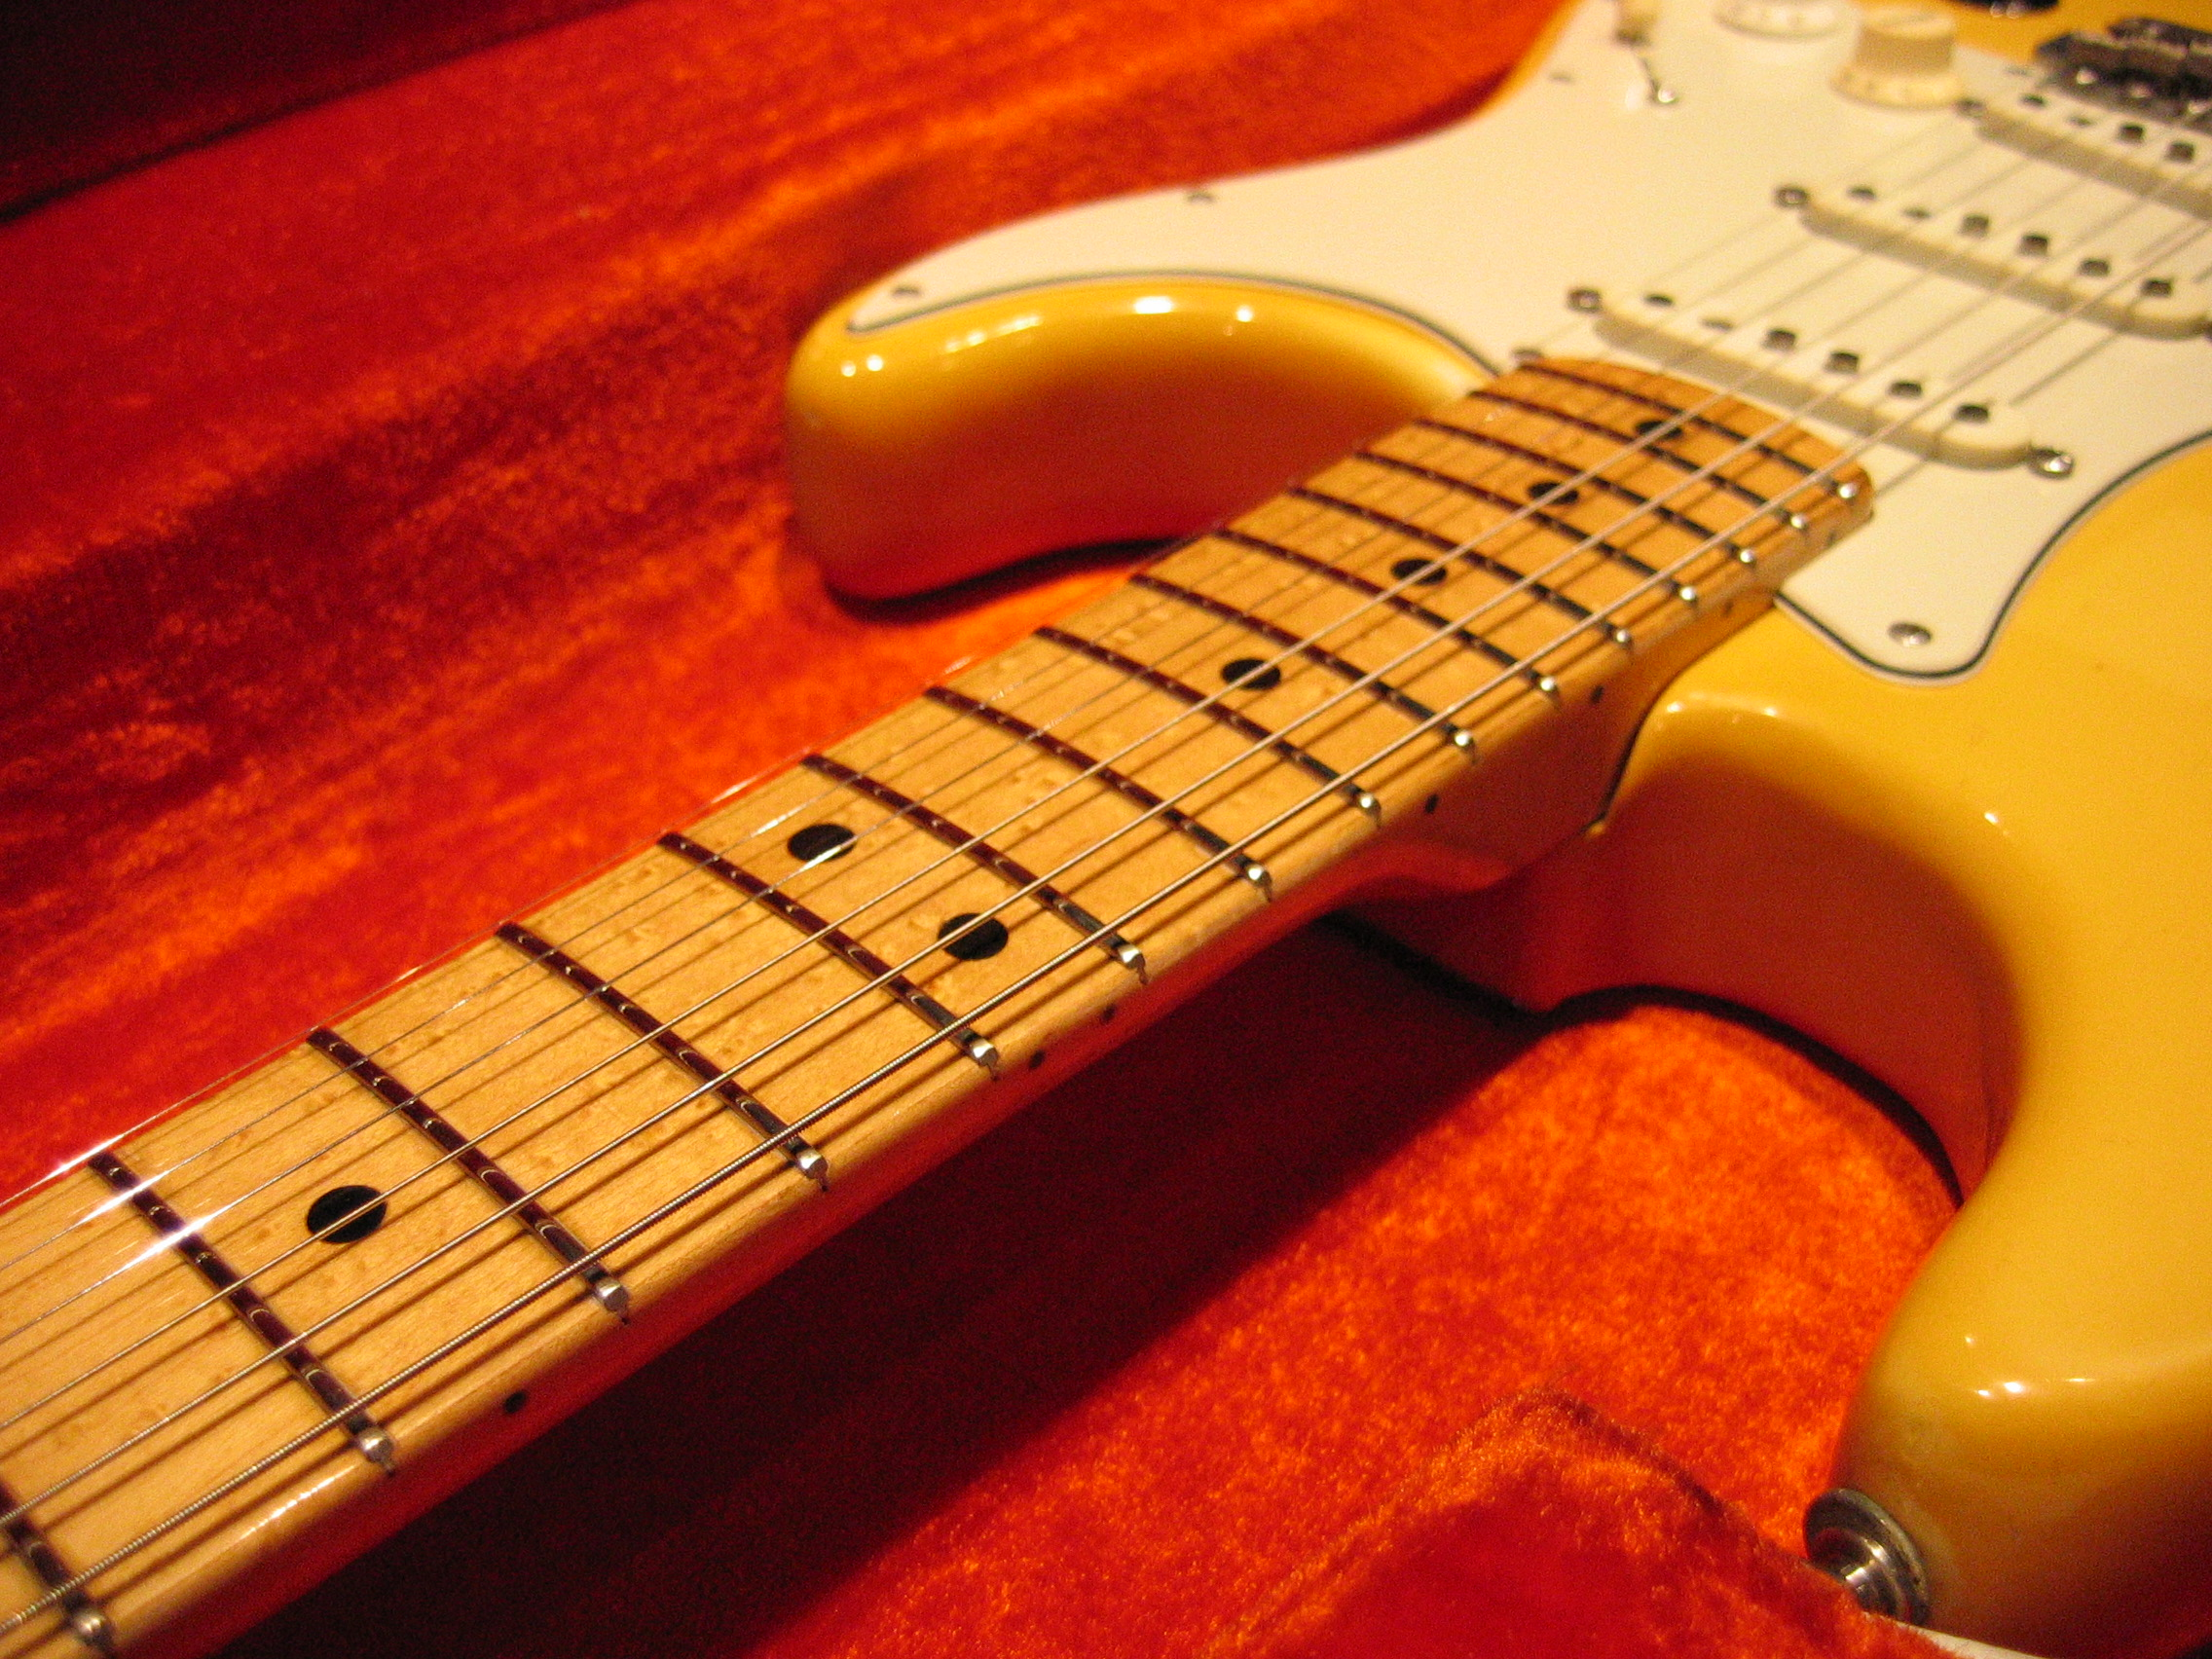 Every guitar, even new, needs to be properly set up to accommodate your playing style and choice of string gauge. Most guitars also react to change of seasons or climate, and need periodical readjustment. A proper set up can change a feel of a guitar and is recommended for every player.